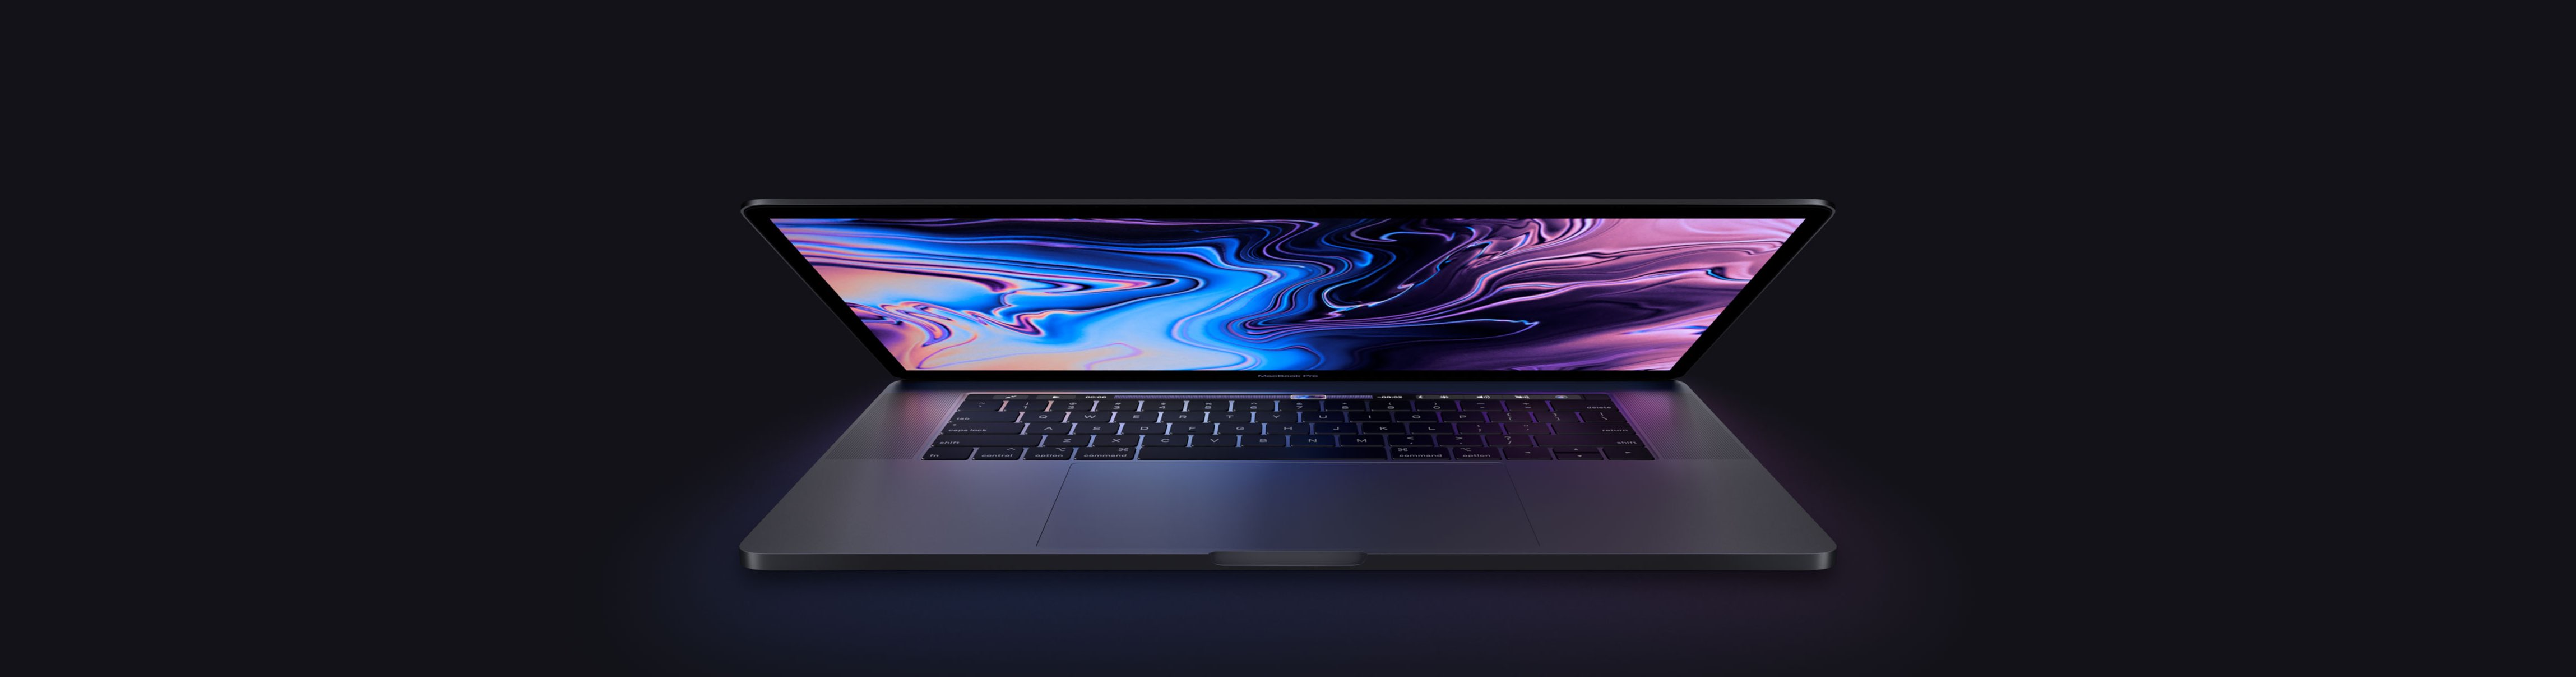 A teaser image showing the new MacBook Pro model released in 2018 with True Tone display technology